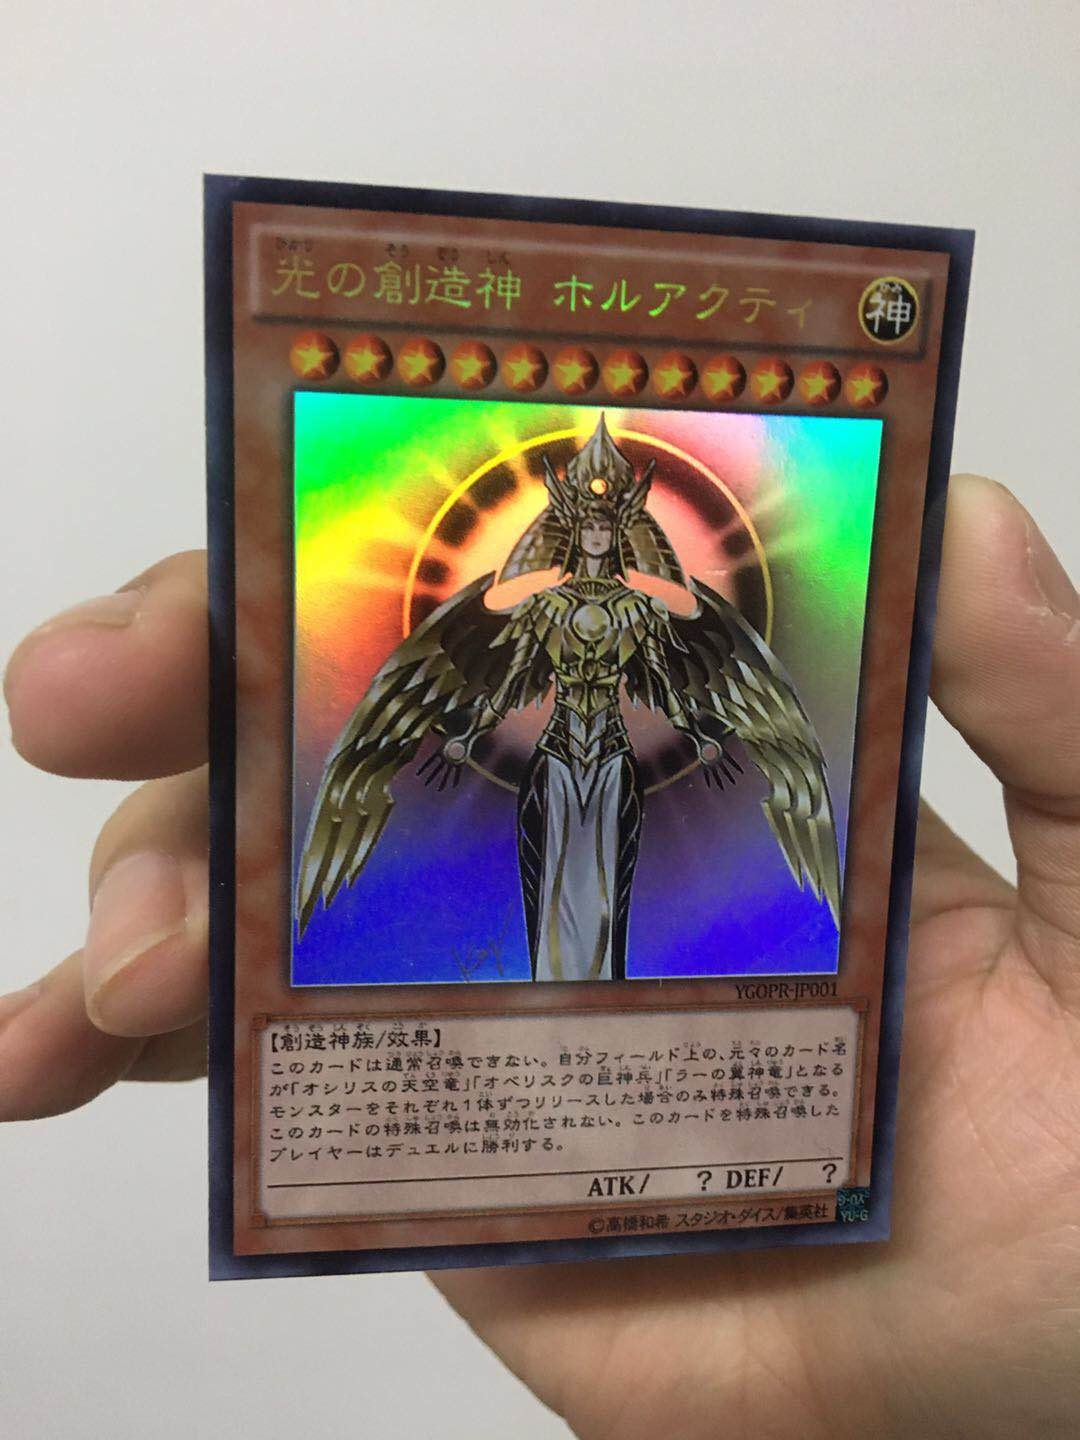 Yu Gi Oh Creation Of Light Harakty Face Flash DIY YGOPR-JP001 Flash Card Toy Hobby Hobby Series Game Collection Anime Card